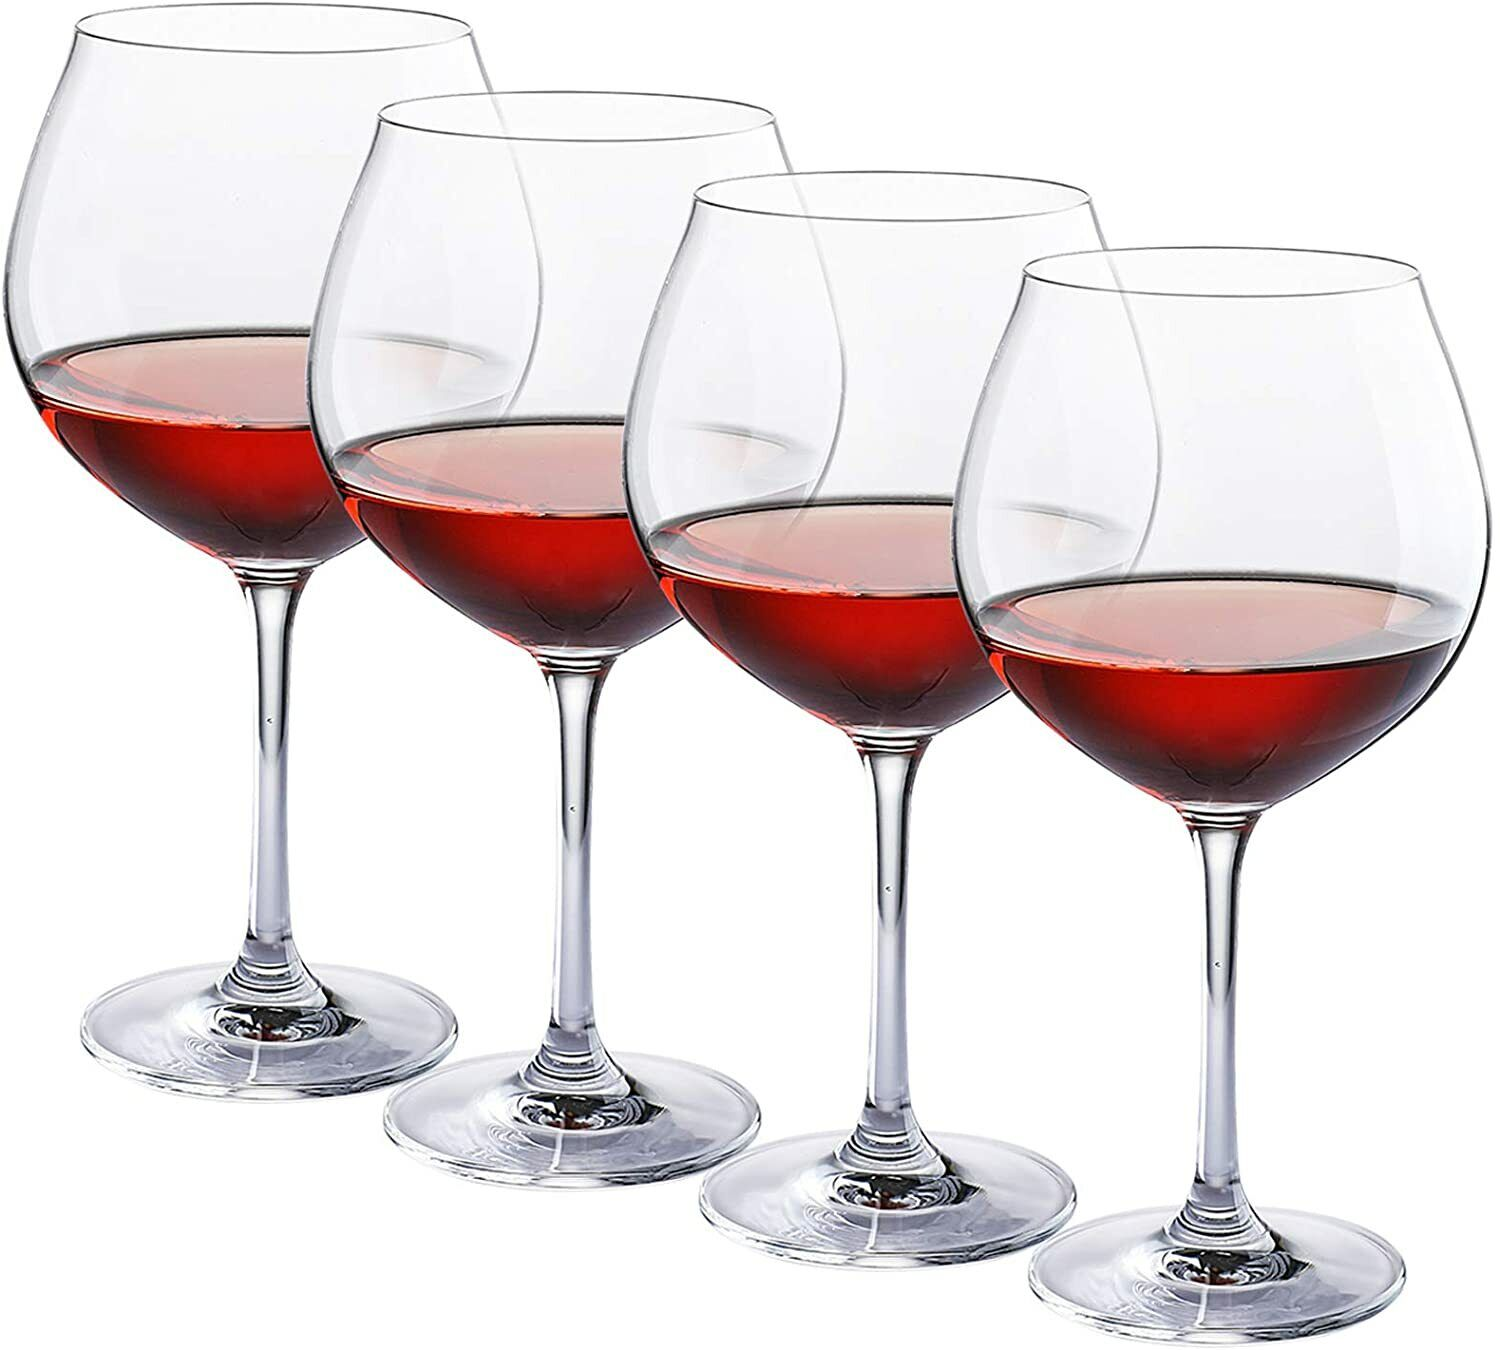 French Bistro Large Red Wine Glasses 26 Ounce Set Of 4 For Sale Online Ebay